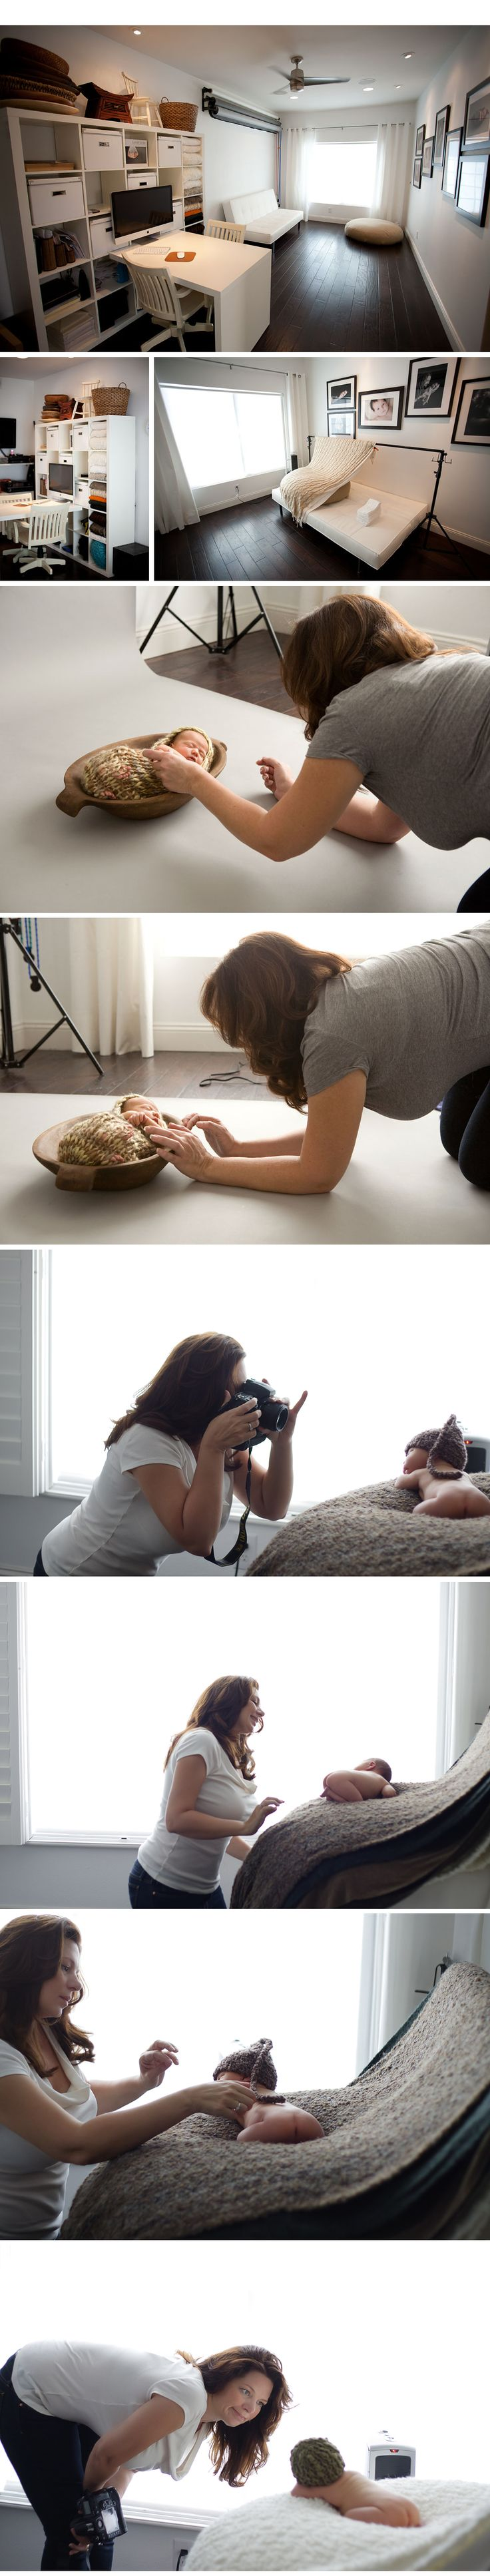 Photography natural light studio for newborn photography